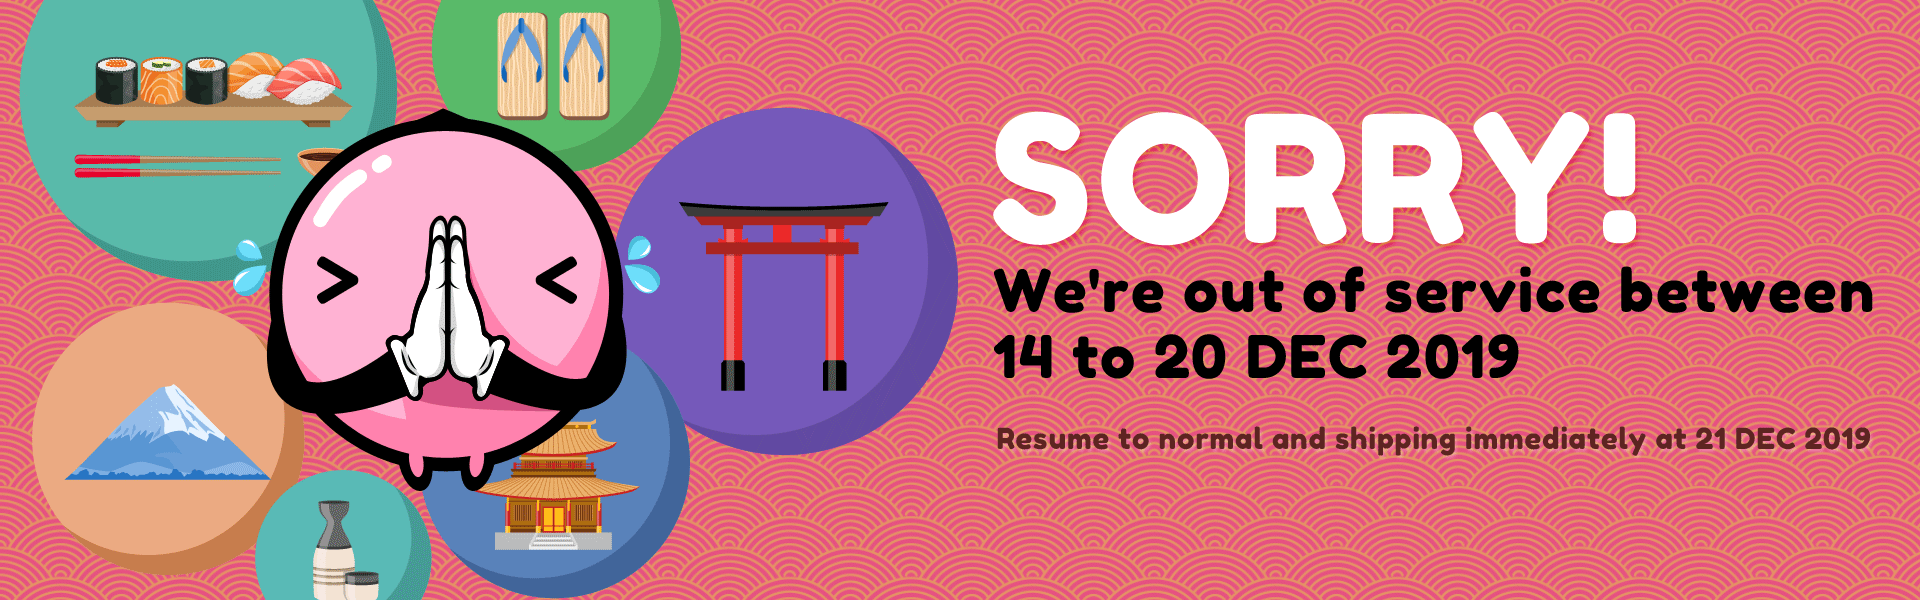 Sorry! we're out of service between 14 to 20 DEC 2019, resume to normal and shipping at 21 DEC 2019